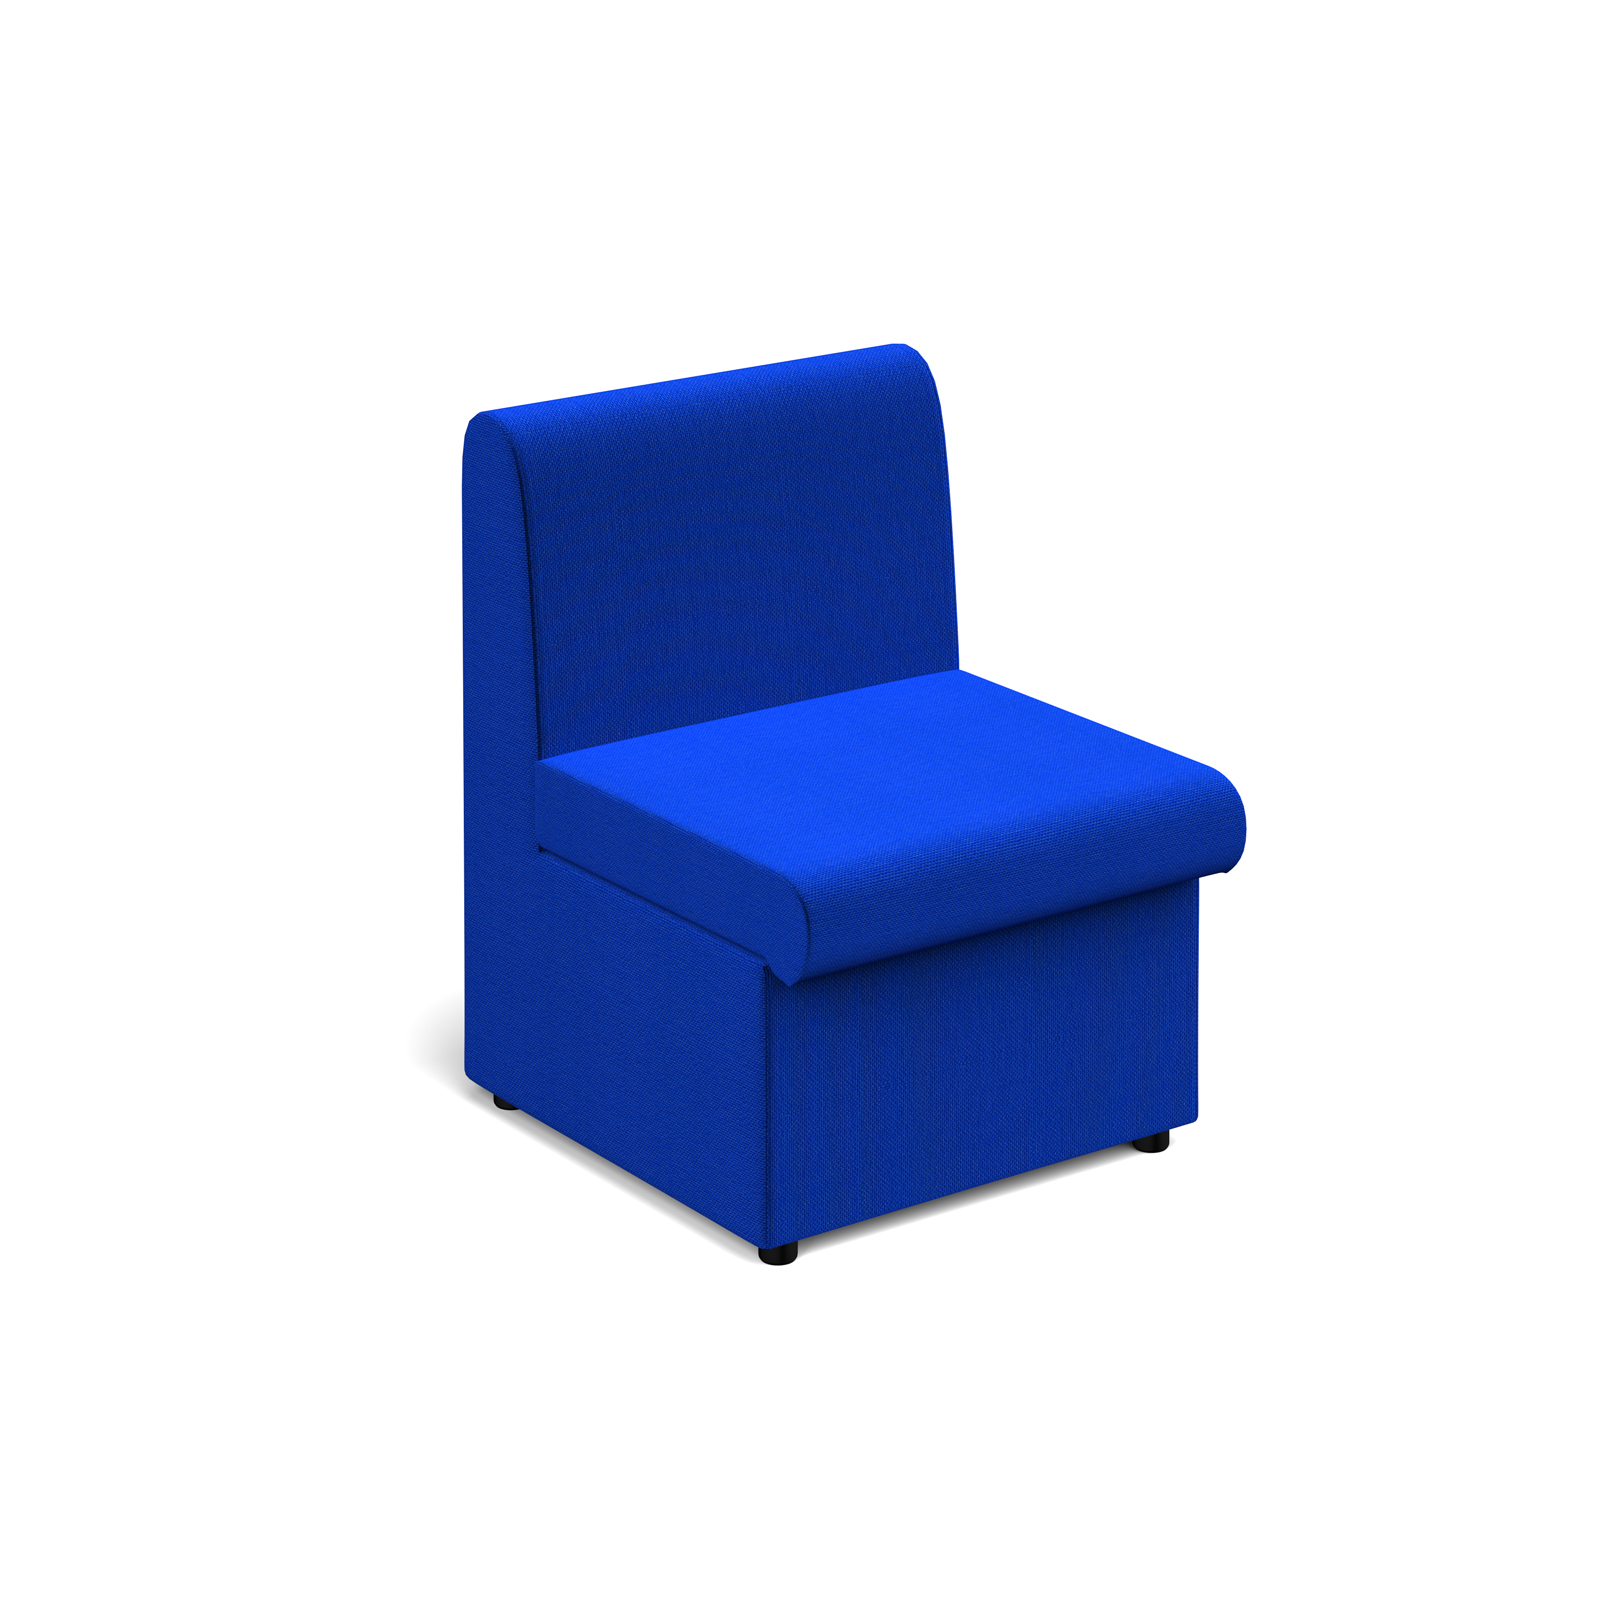 Reception Chairs Alto modular reception seating with no arms - blue